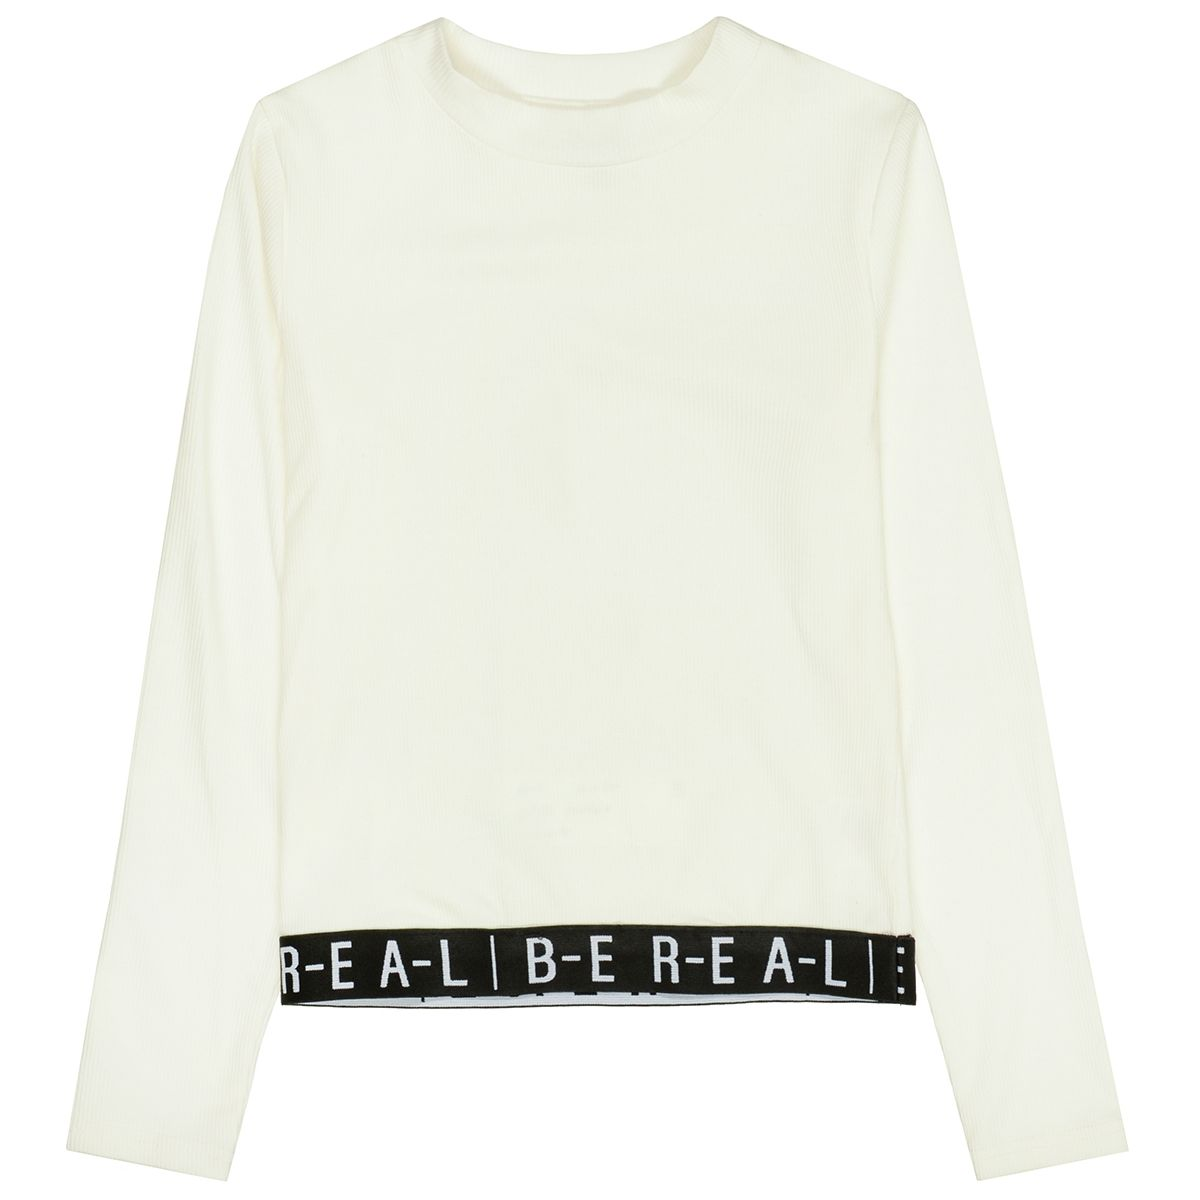 ATTENTION Rippshirt BE REAL - Offwhite